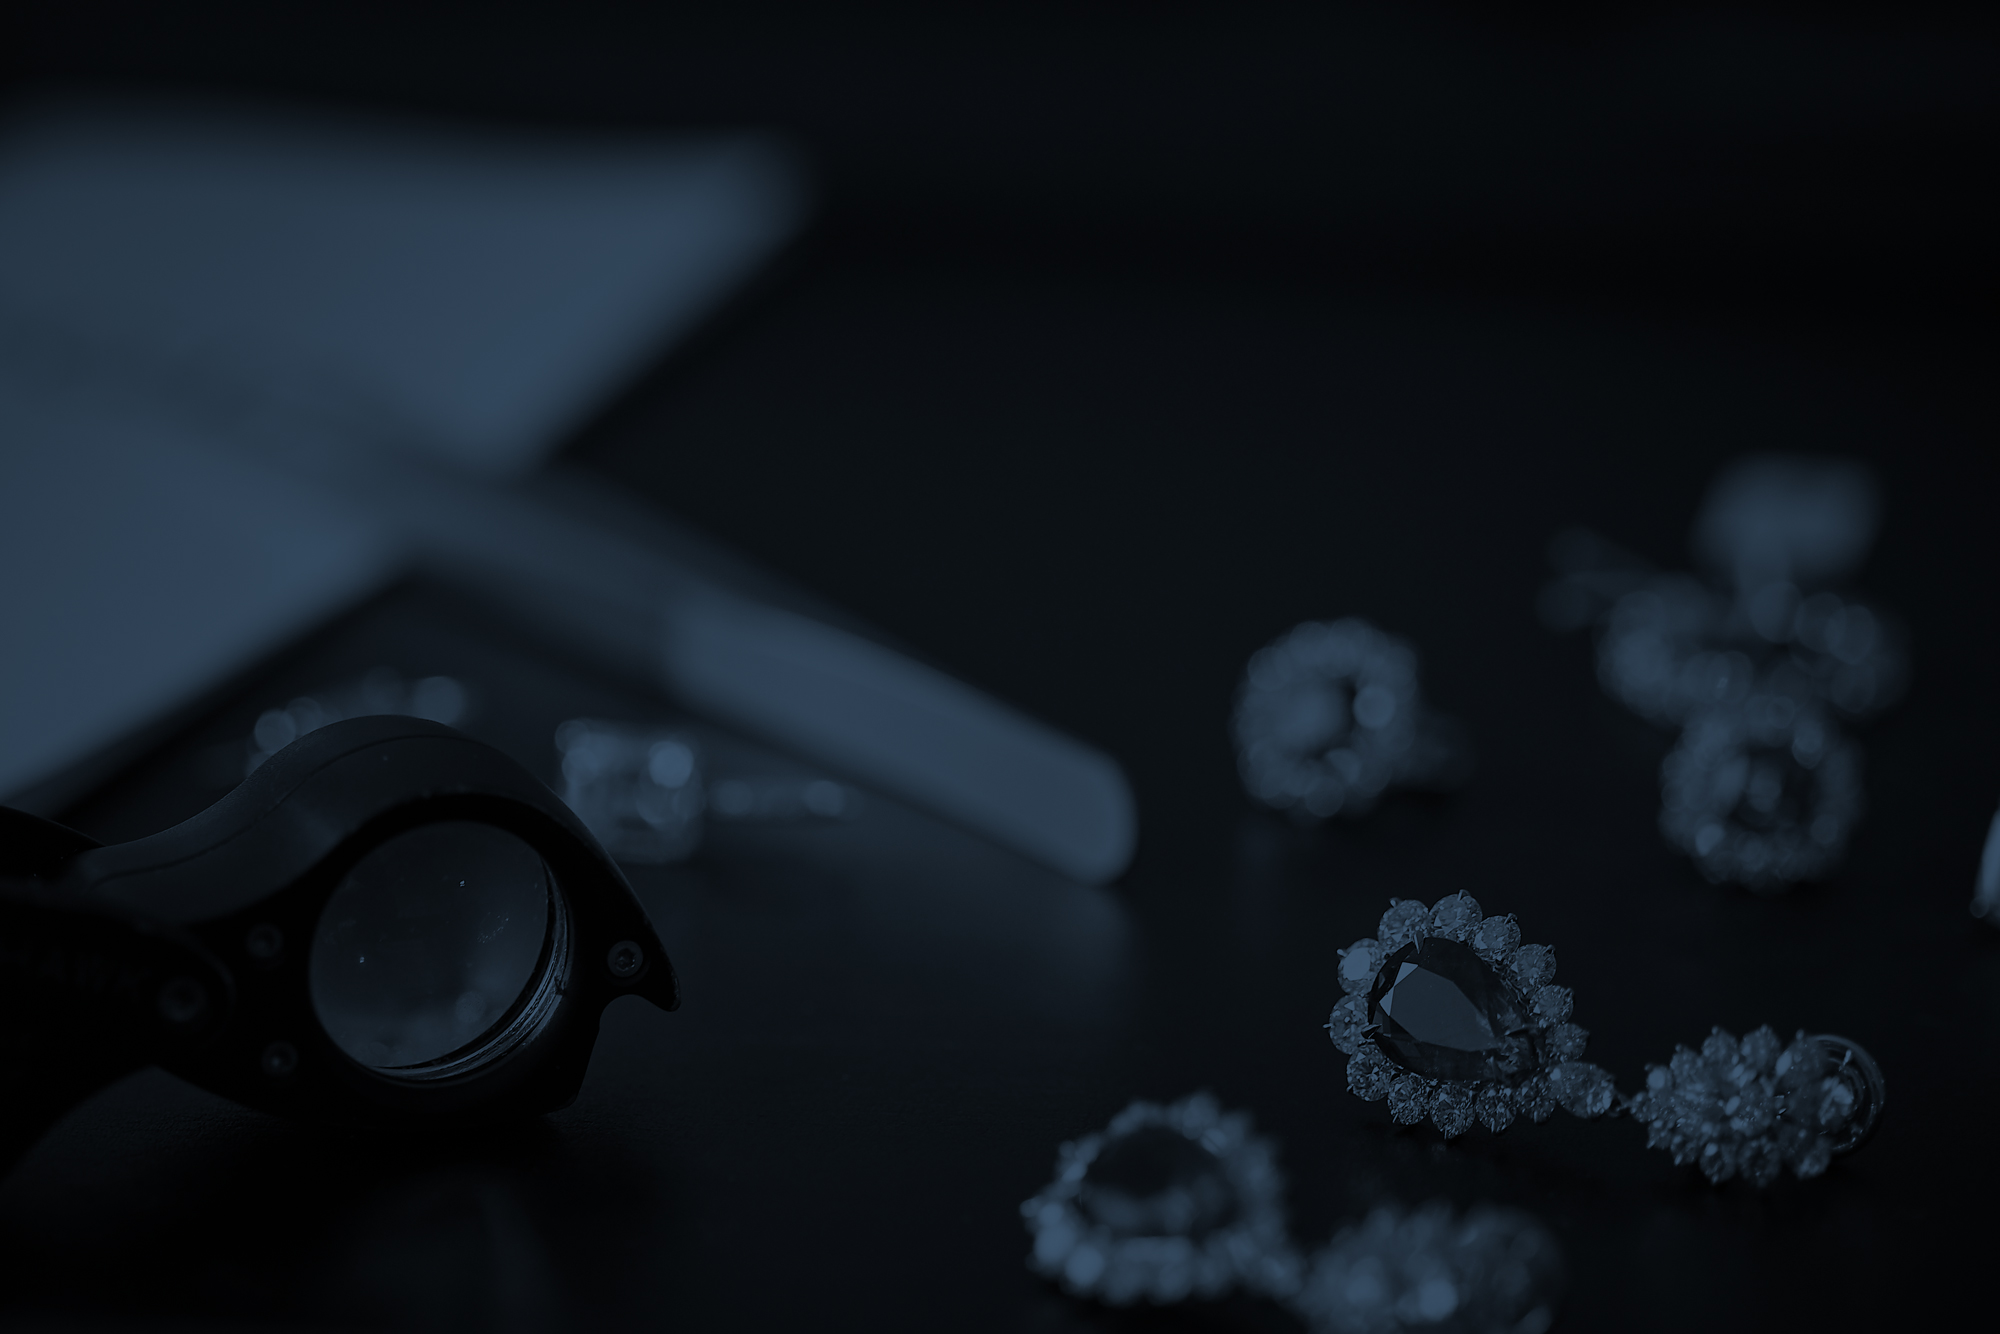 With forty years in the diamond industry and being located in the International Gem Tower, we understand the constraints and opportunities you face.